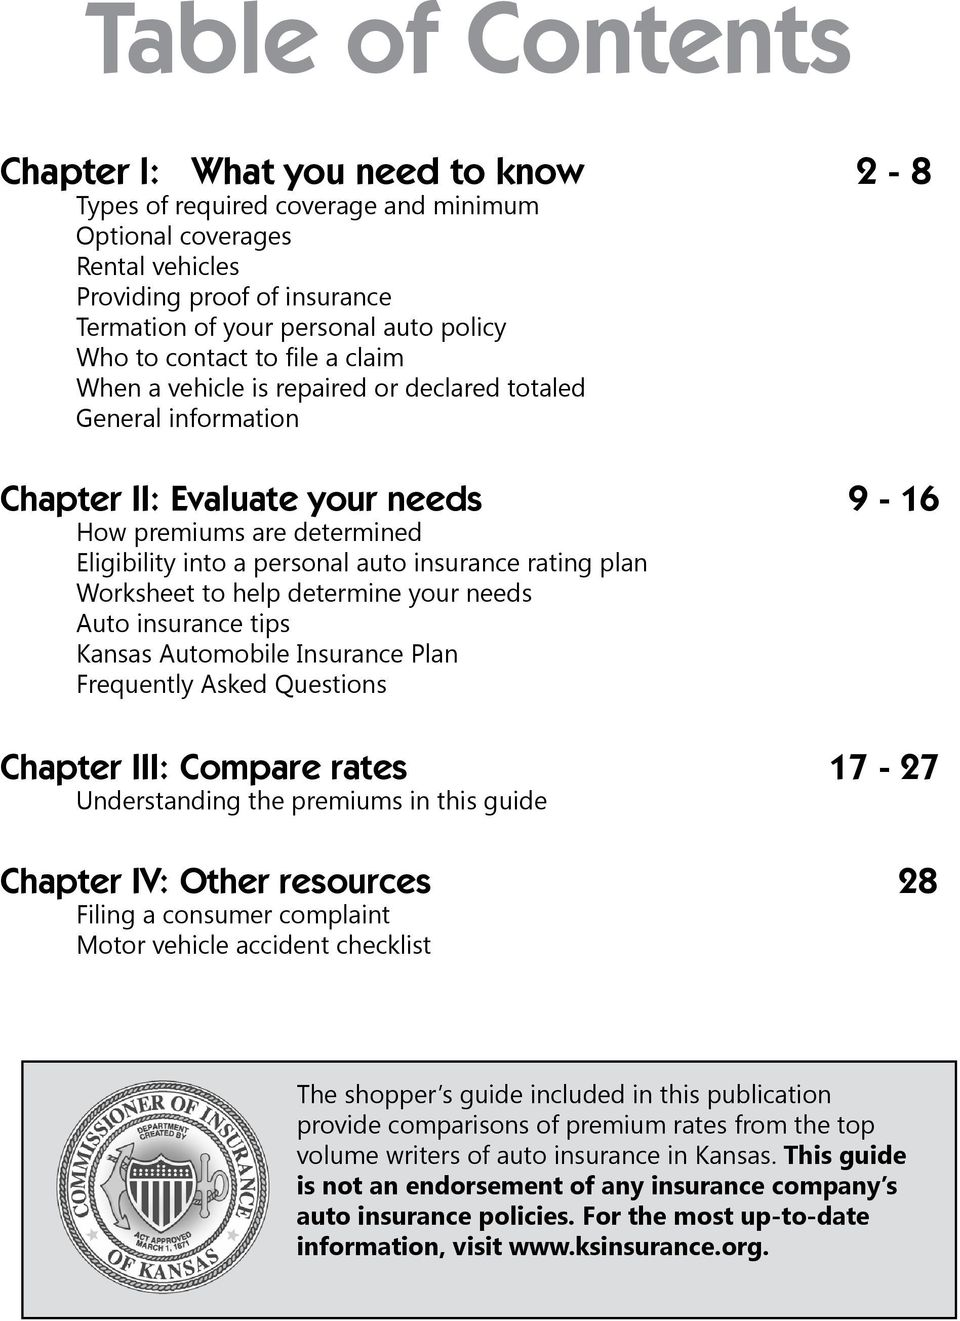 insurance rating plan Worksheet to help determine your needs Auto insurance tips Kansas Automobile Insurance Plan Frequently Asked Questions Chapter III: Compare rates 17-27 Understanding the